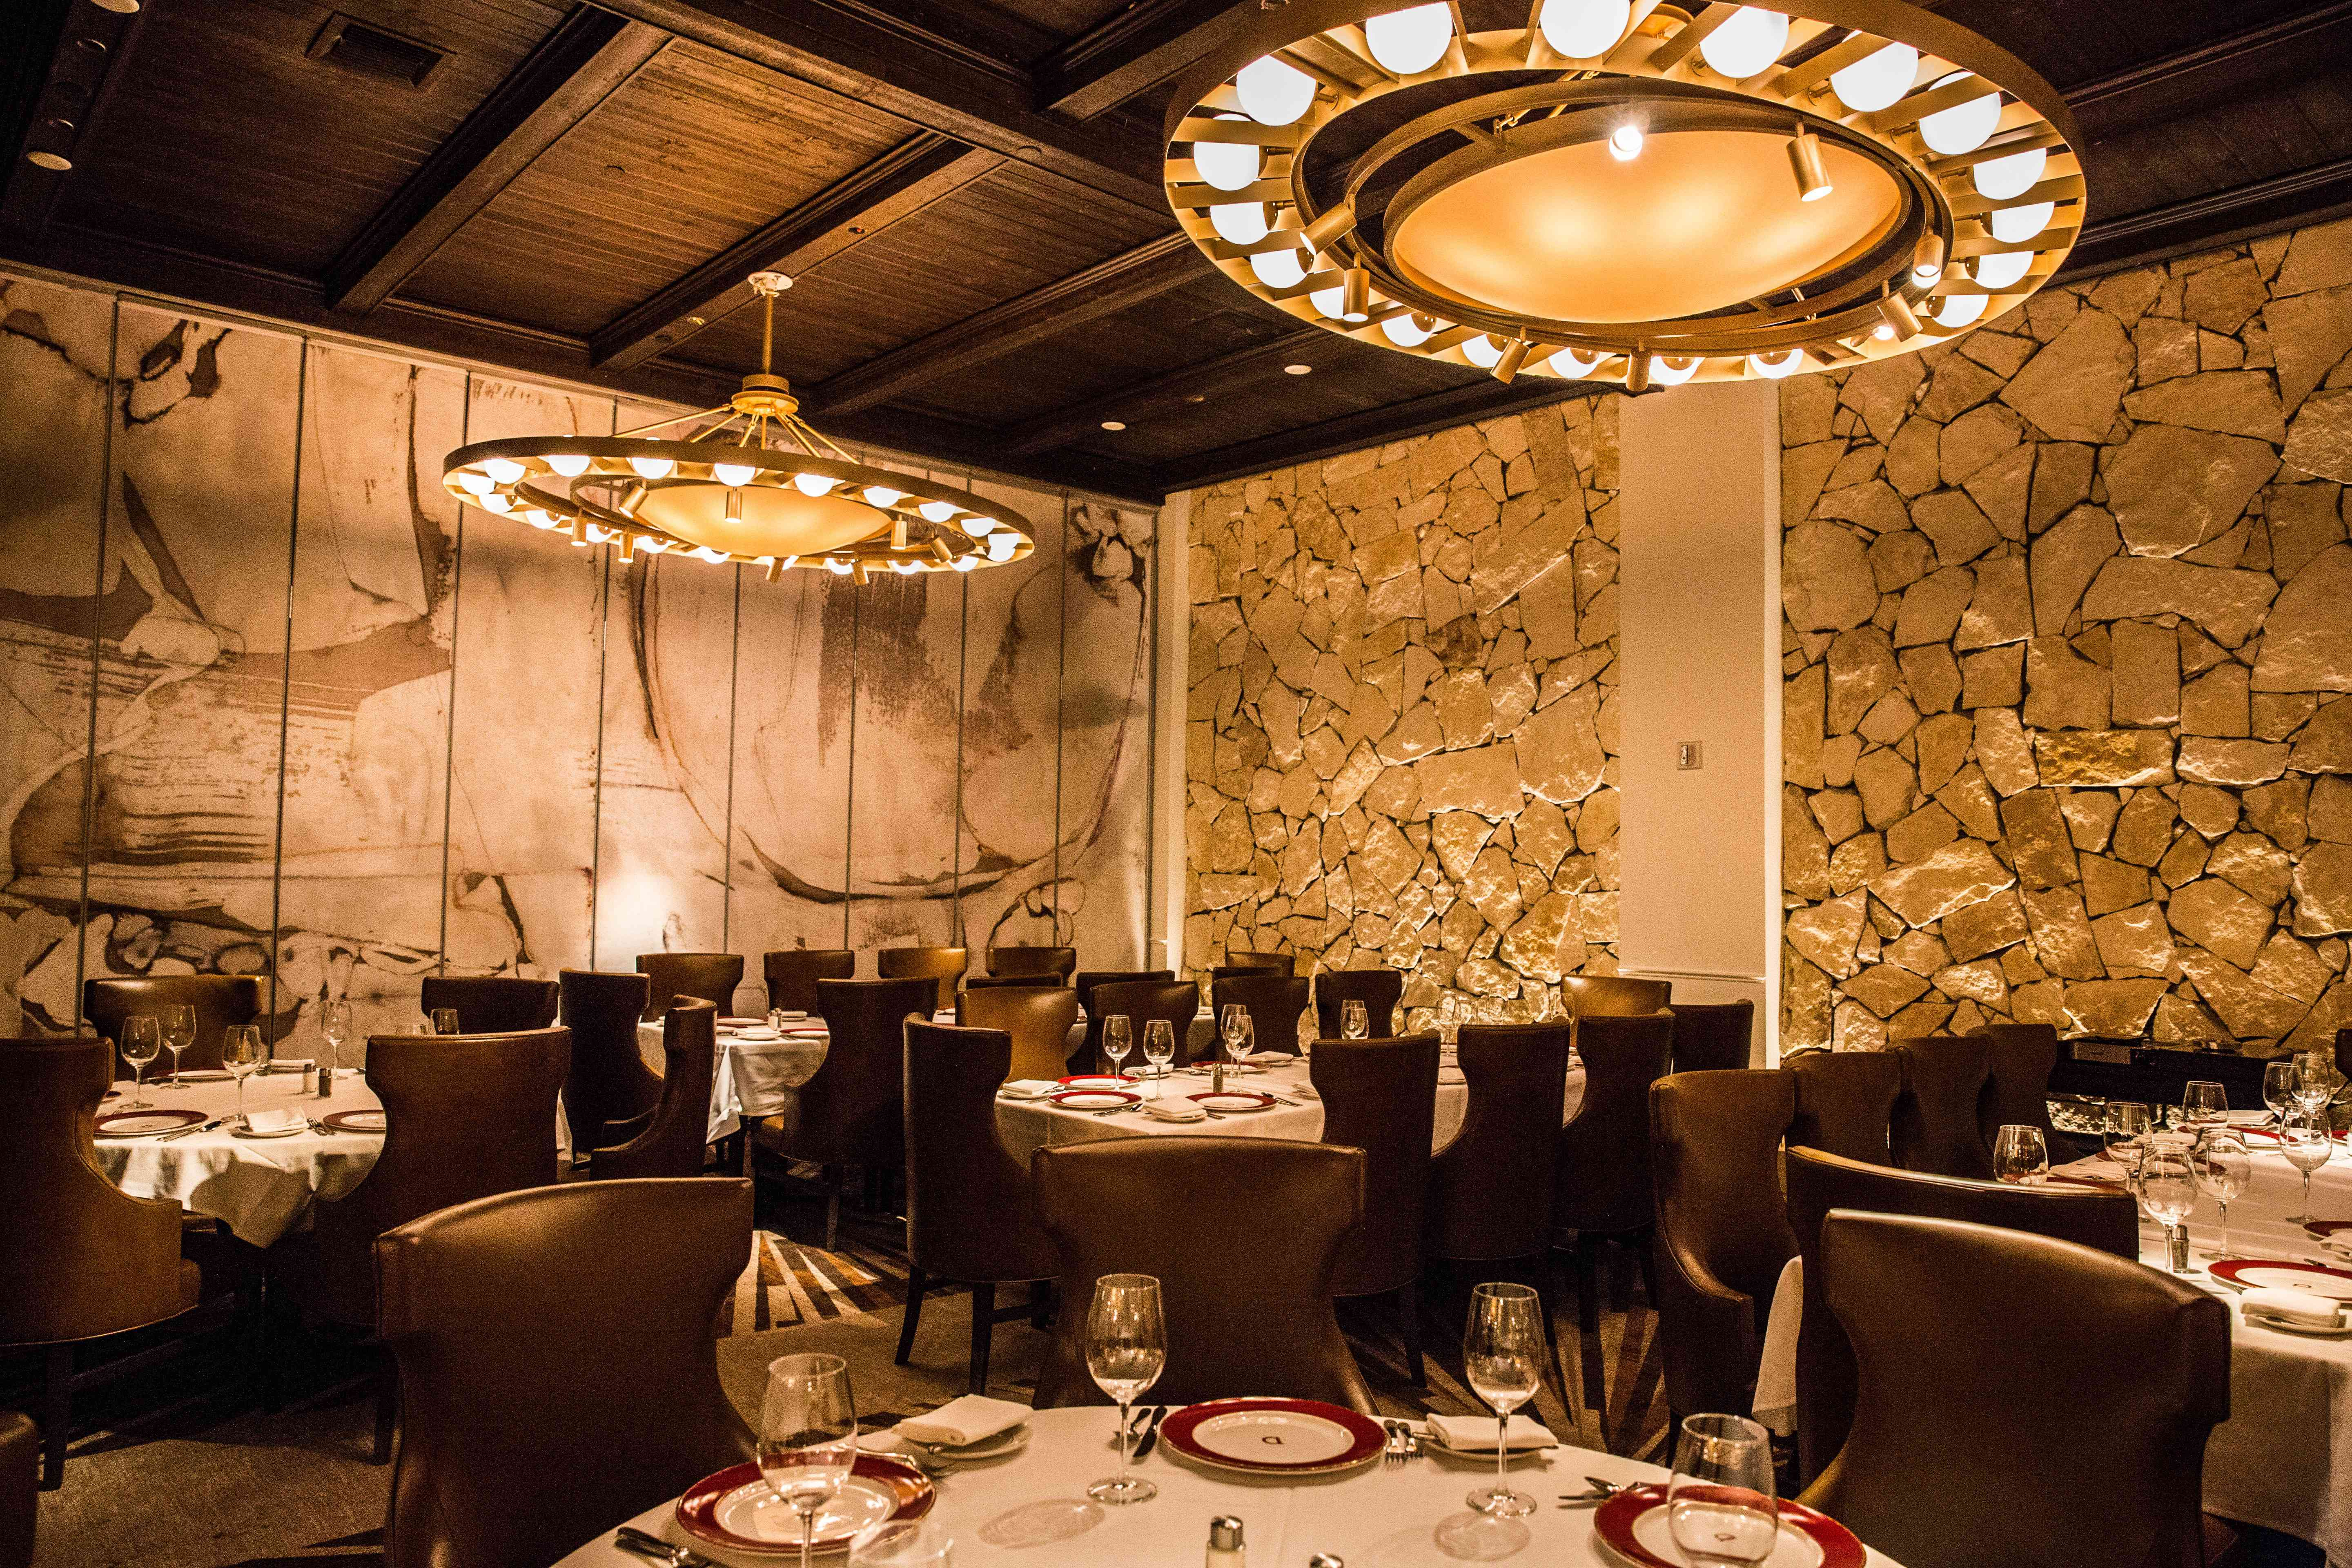 Dining room in Delmonico Steakhouse with large chandeliers